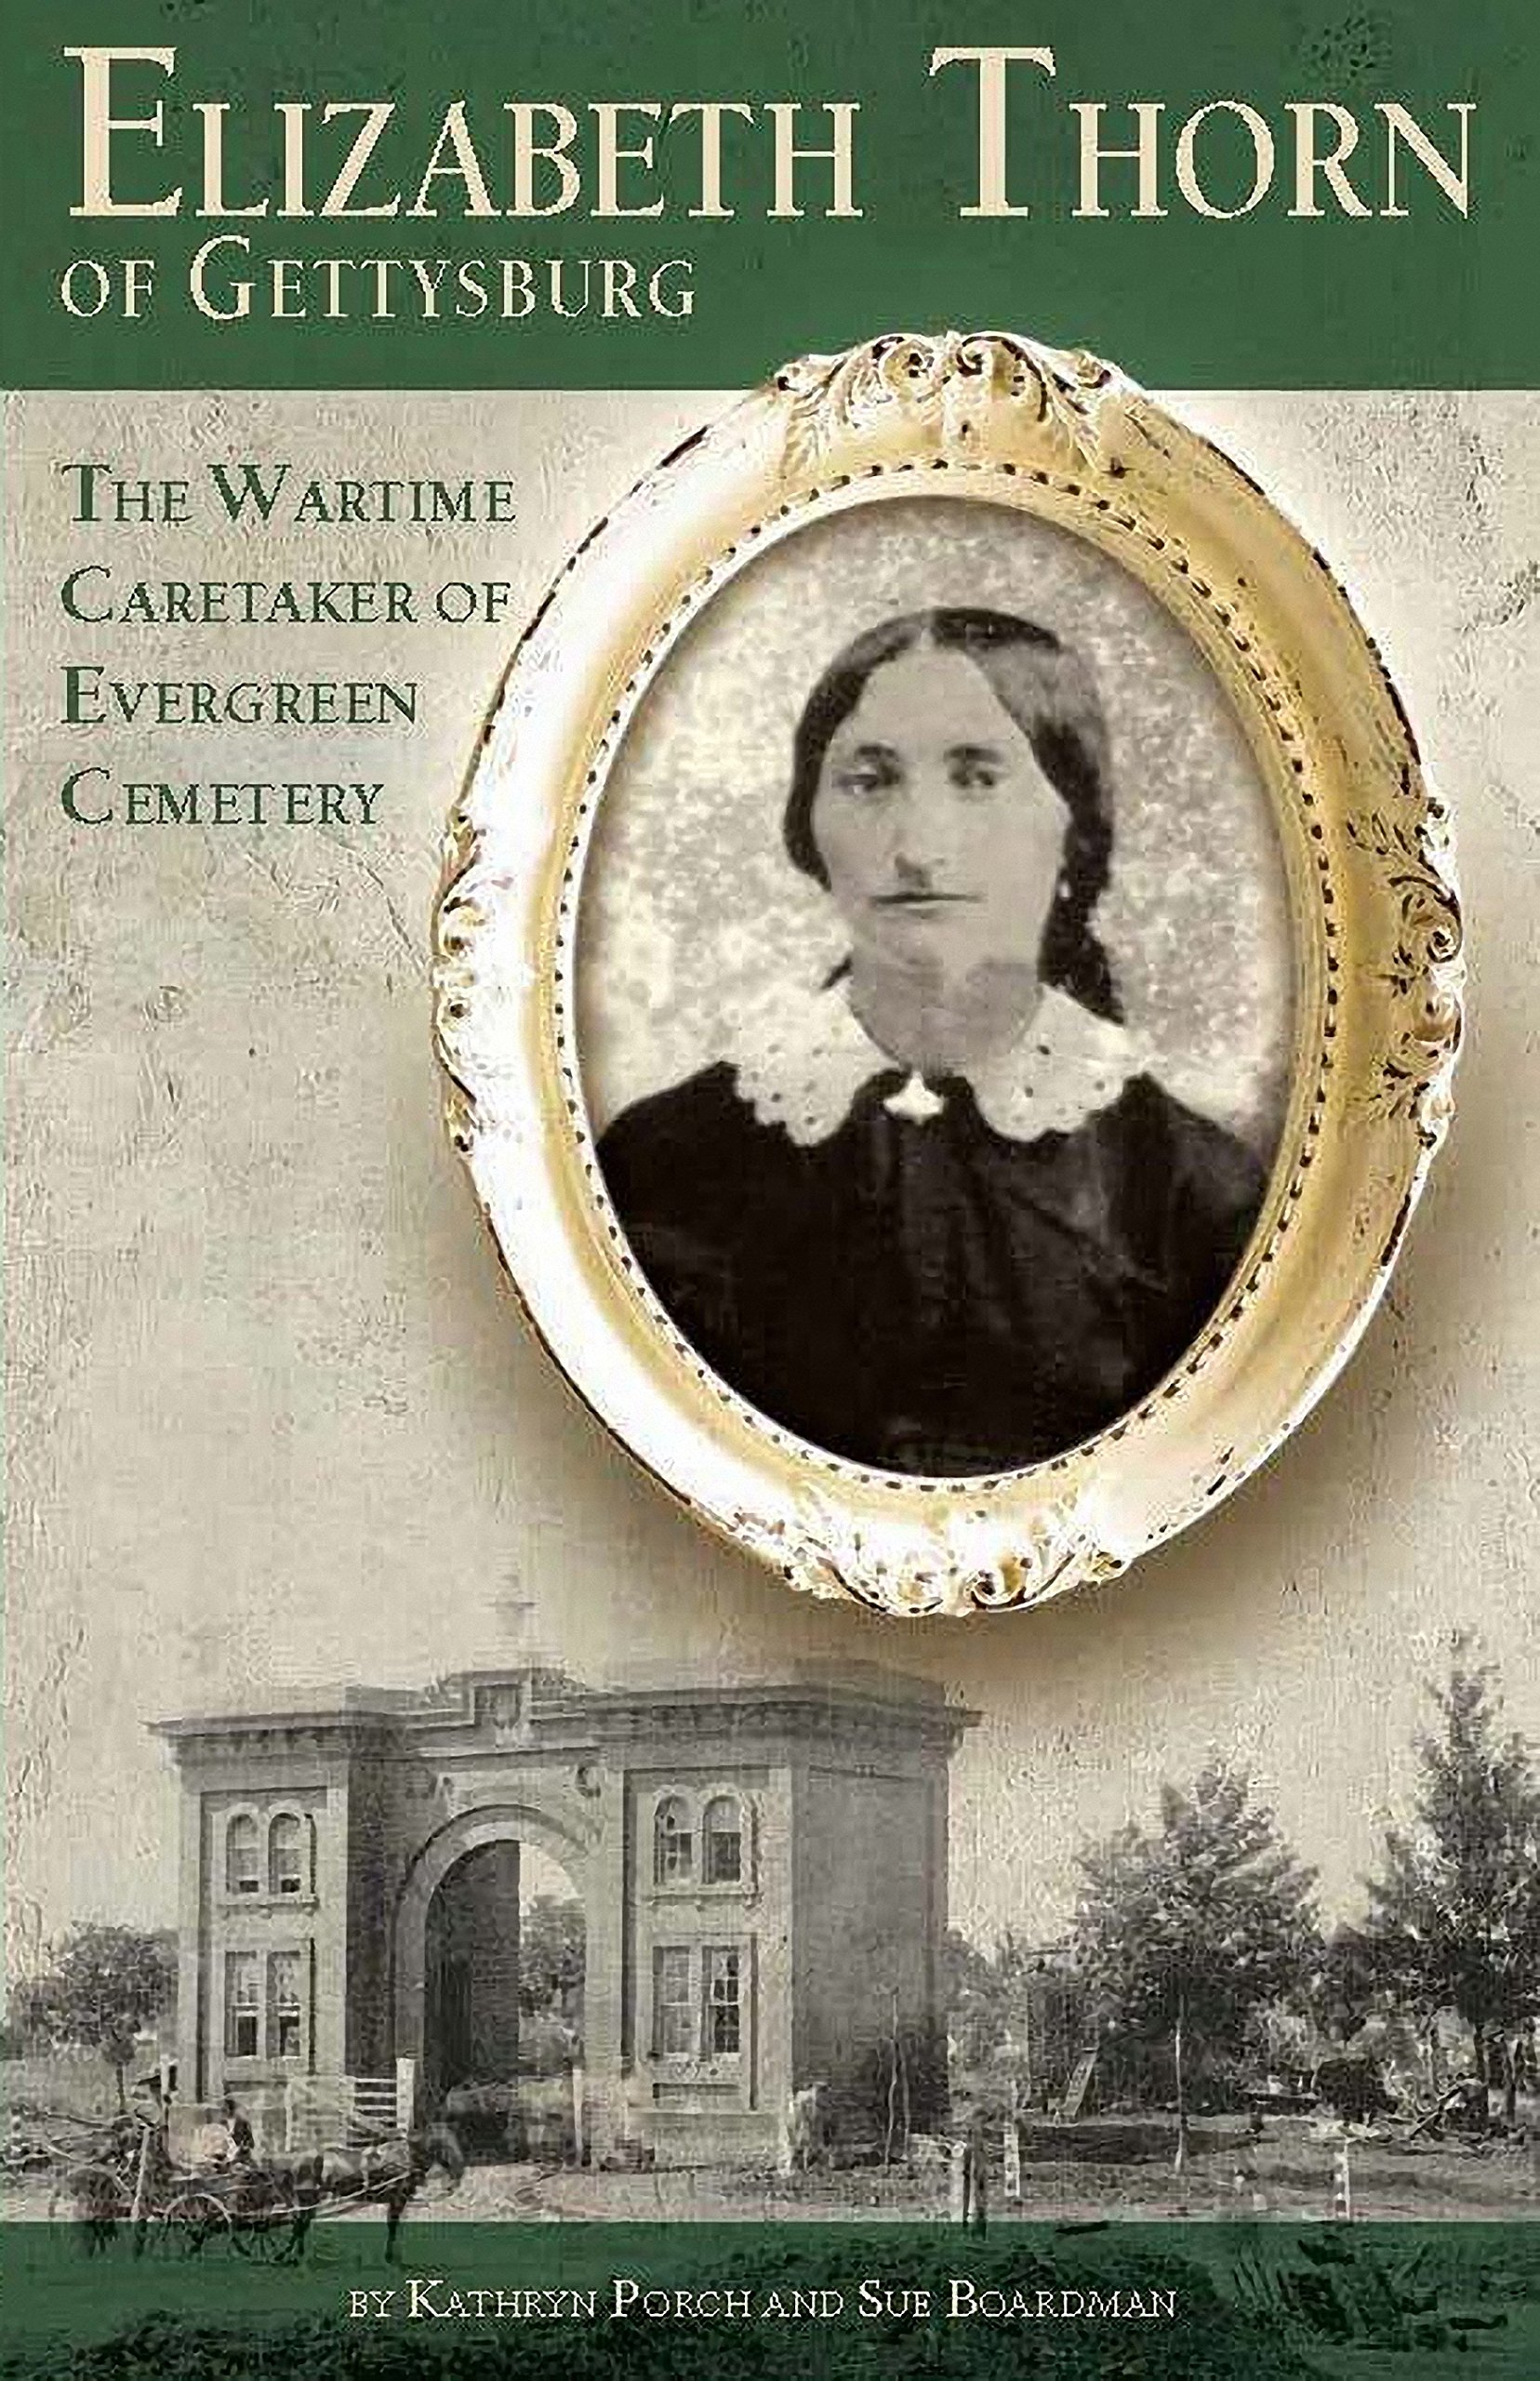 Elizabeth Thorn of Gettysburg: The Wartime Caretaker of Evergreen Cemetery